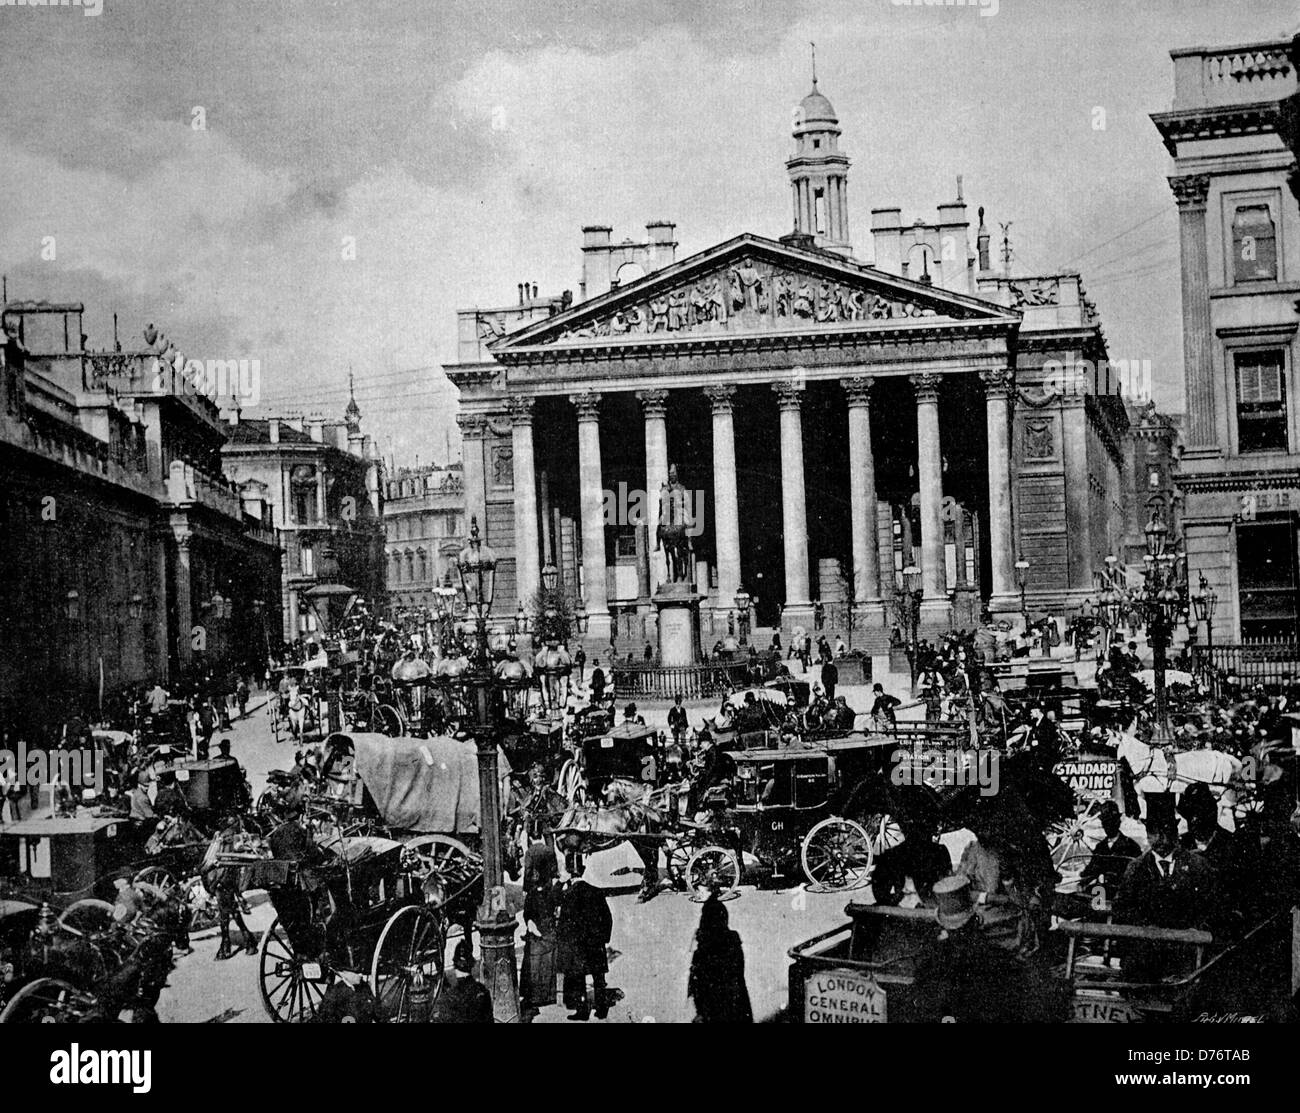 One of the first autotype photographs of the Royal Exchange in London, England, United Kingdom, circa 1880 - Stock Image